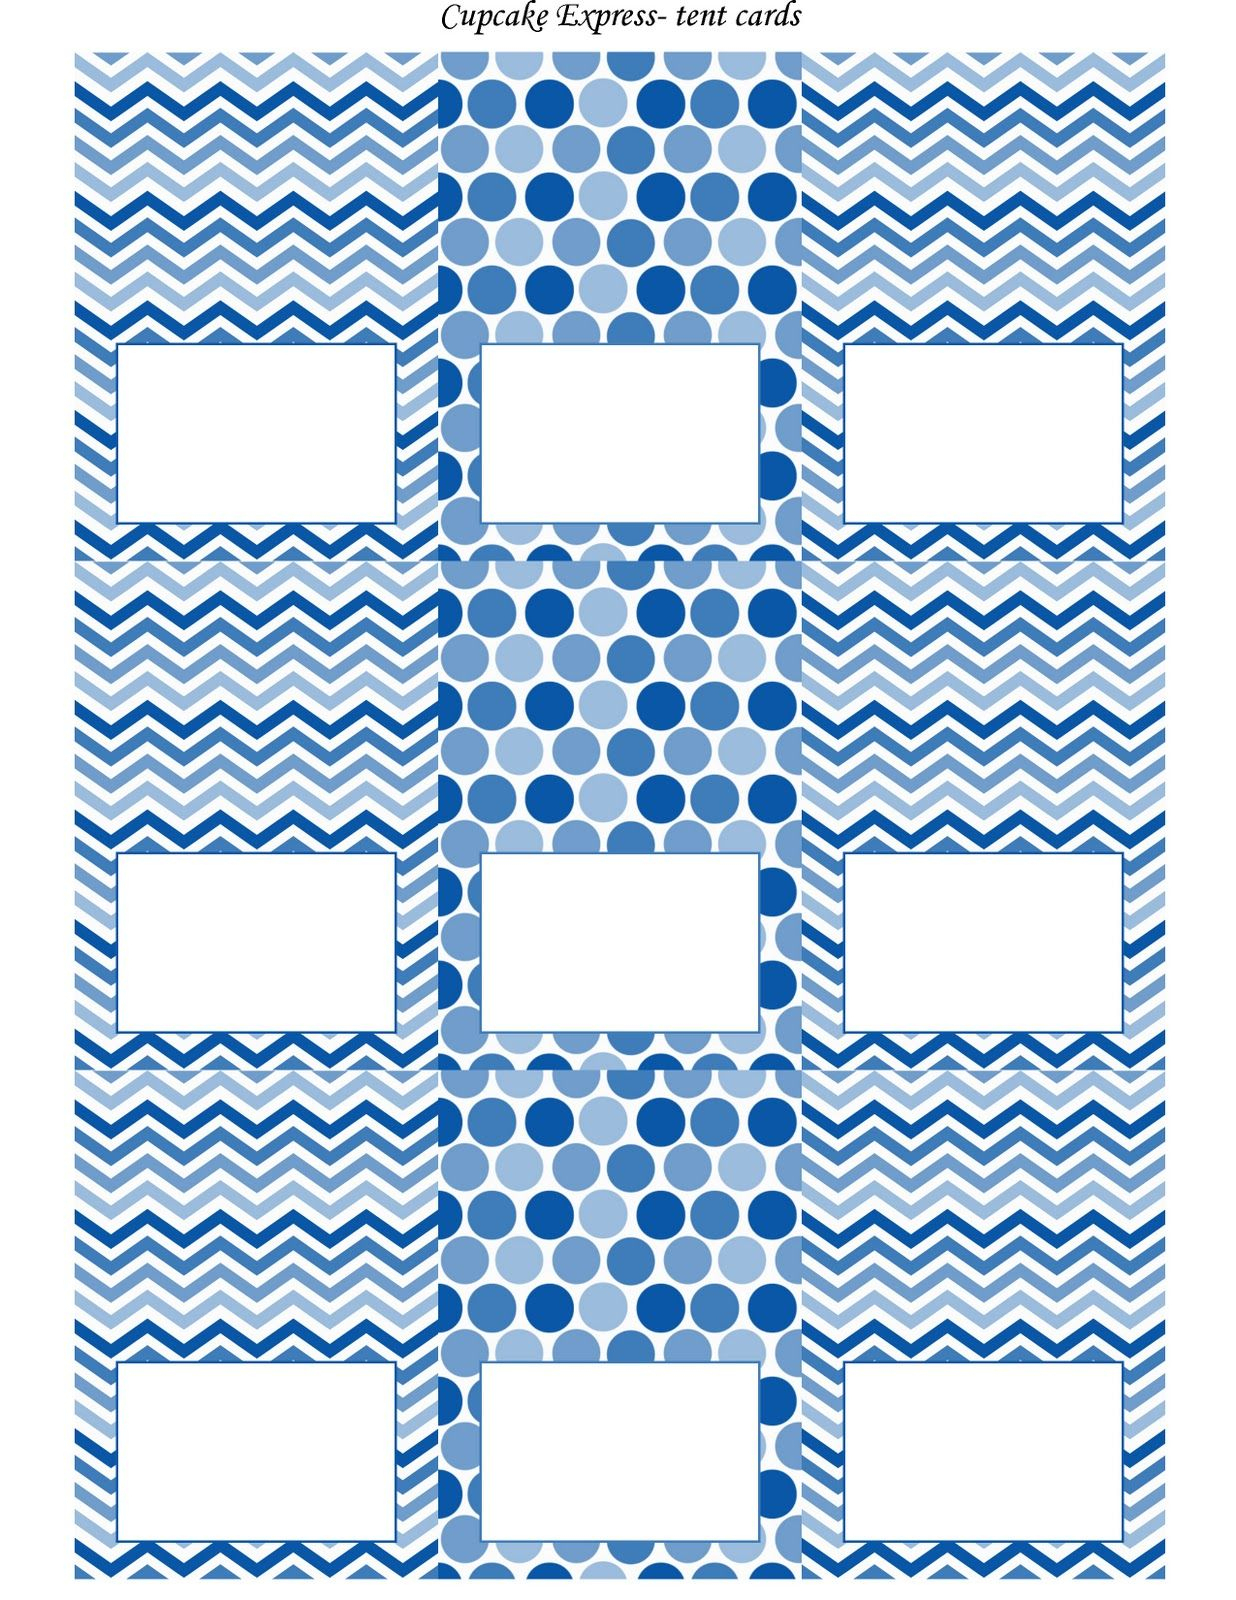 Free Blue And White Printable Tent Cards | Free Printables - Free Printable Food Tent Cards